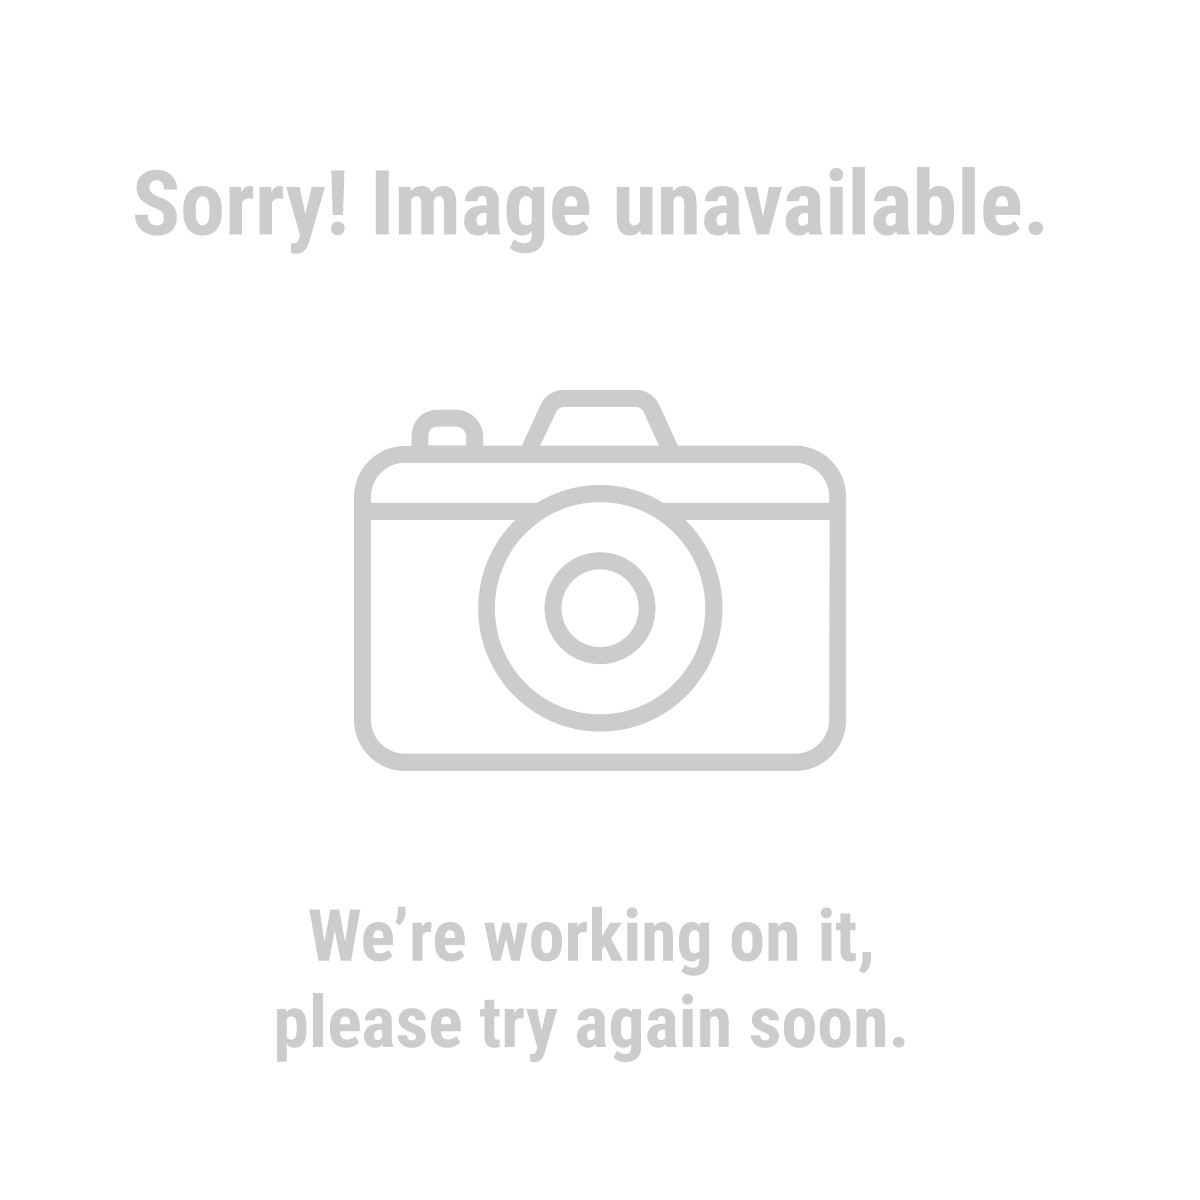 Chicago Electric Welding Systems 65435 20 Piece MIG Welder Contact Tips